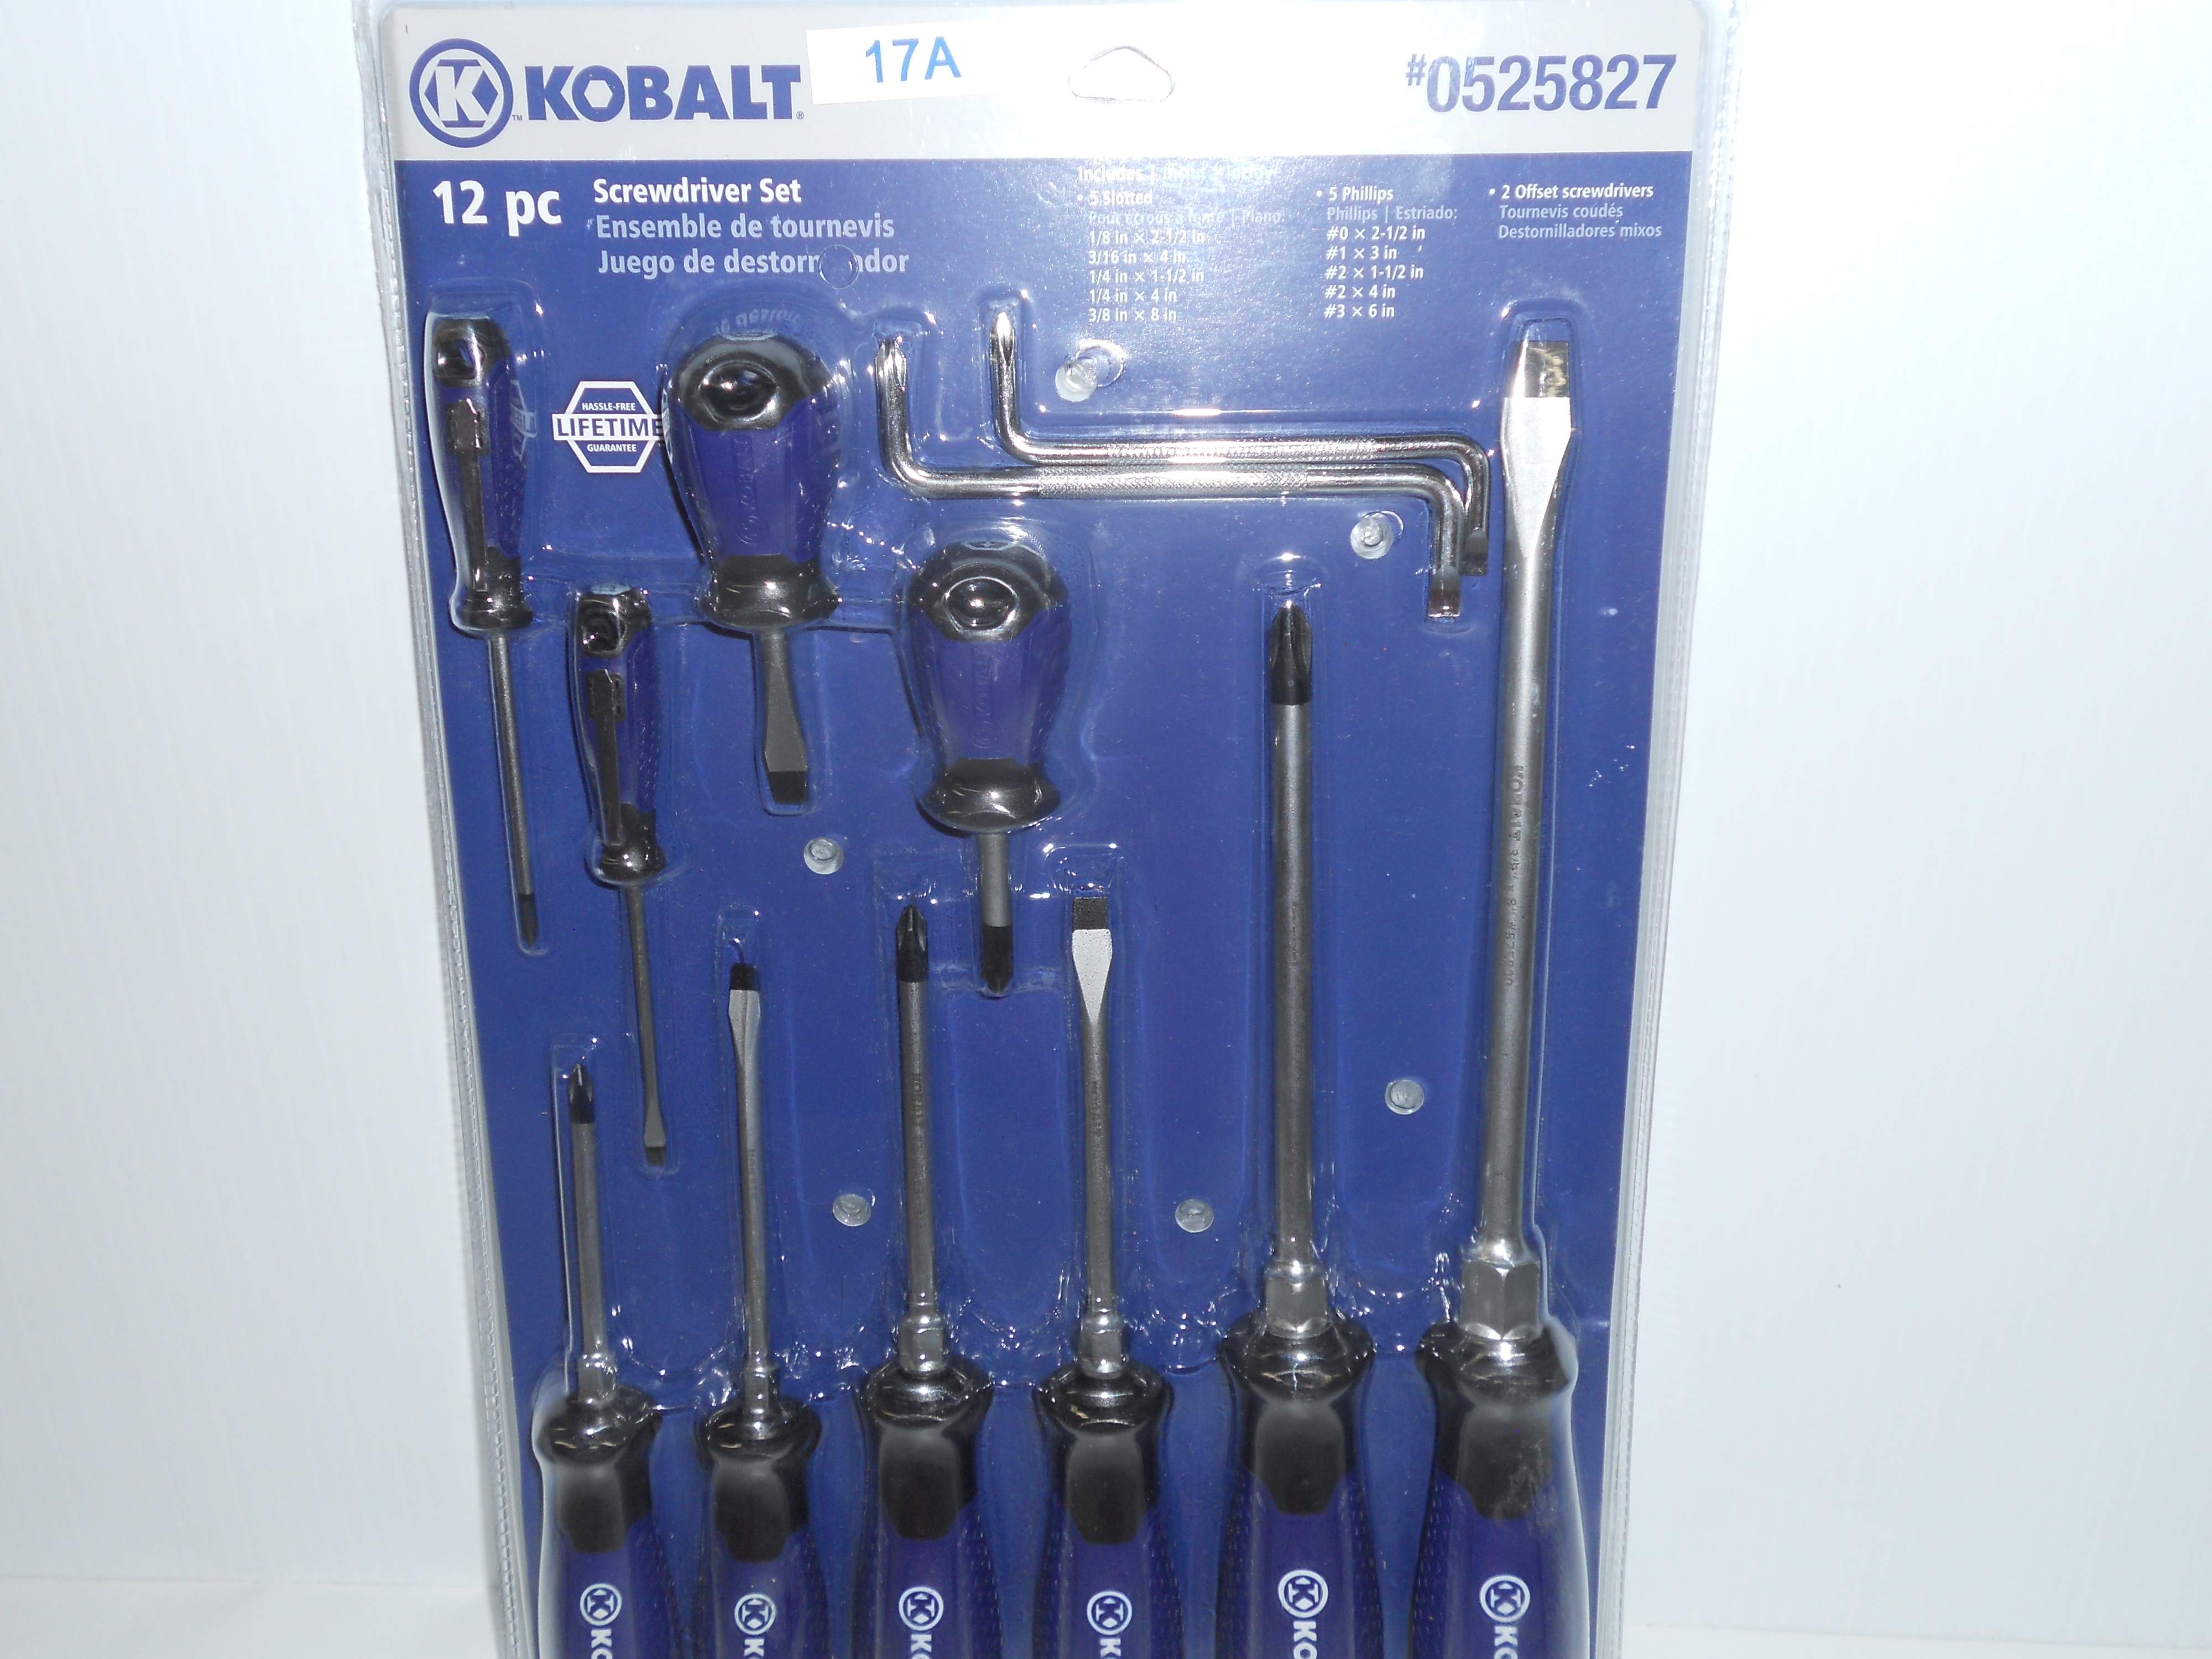 Kobalt 12-piece Screwdriver set - Image 2 of 2